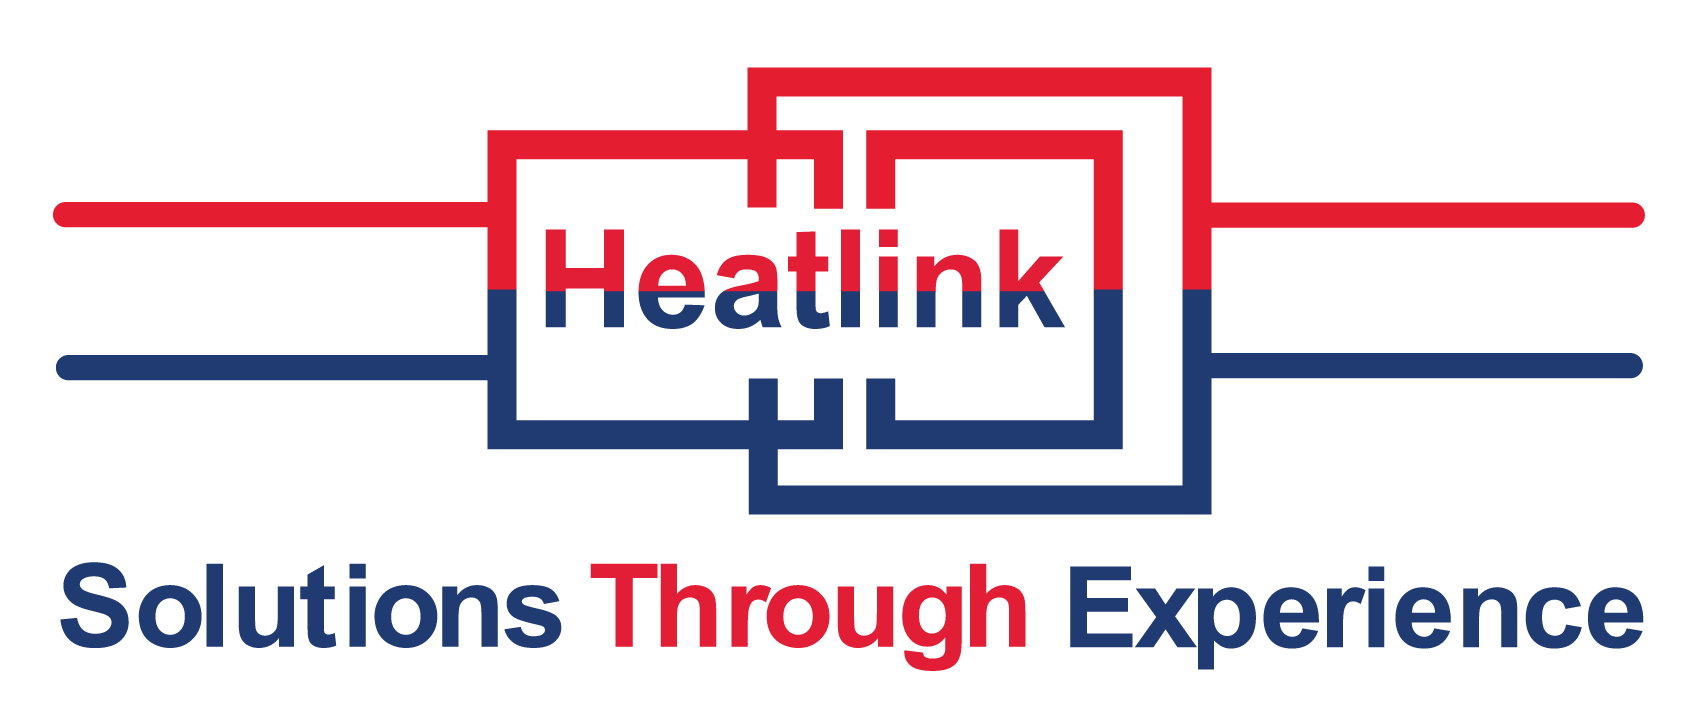 HEATLINK LOGO - Debt Avoidance